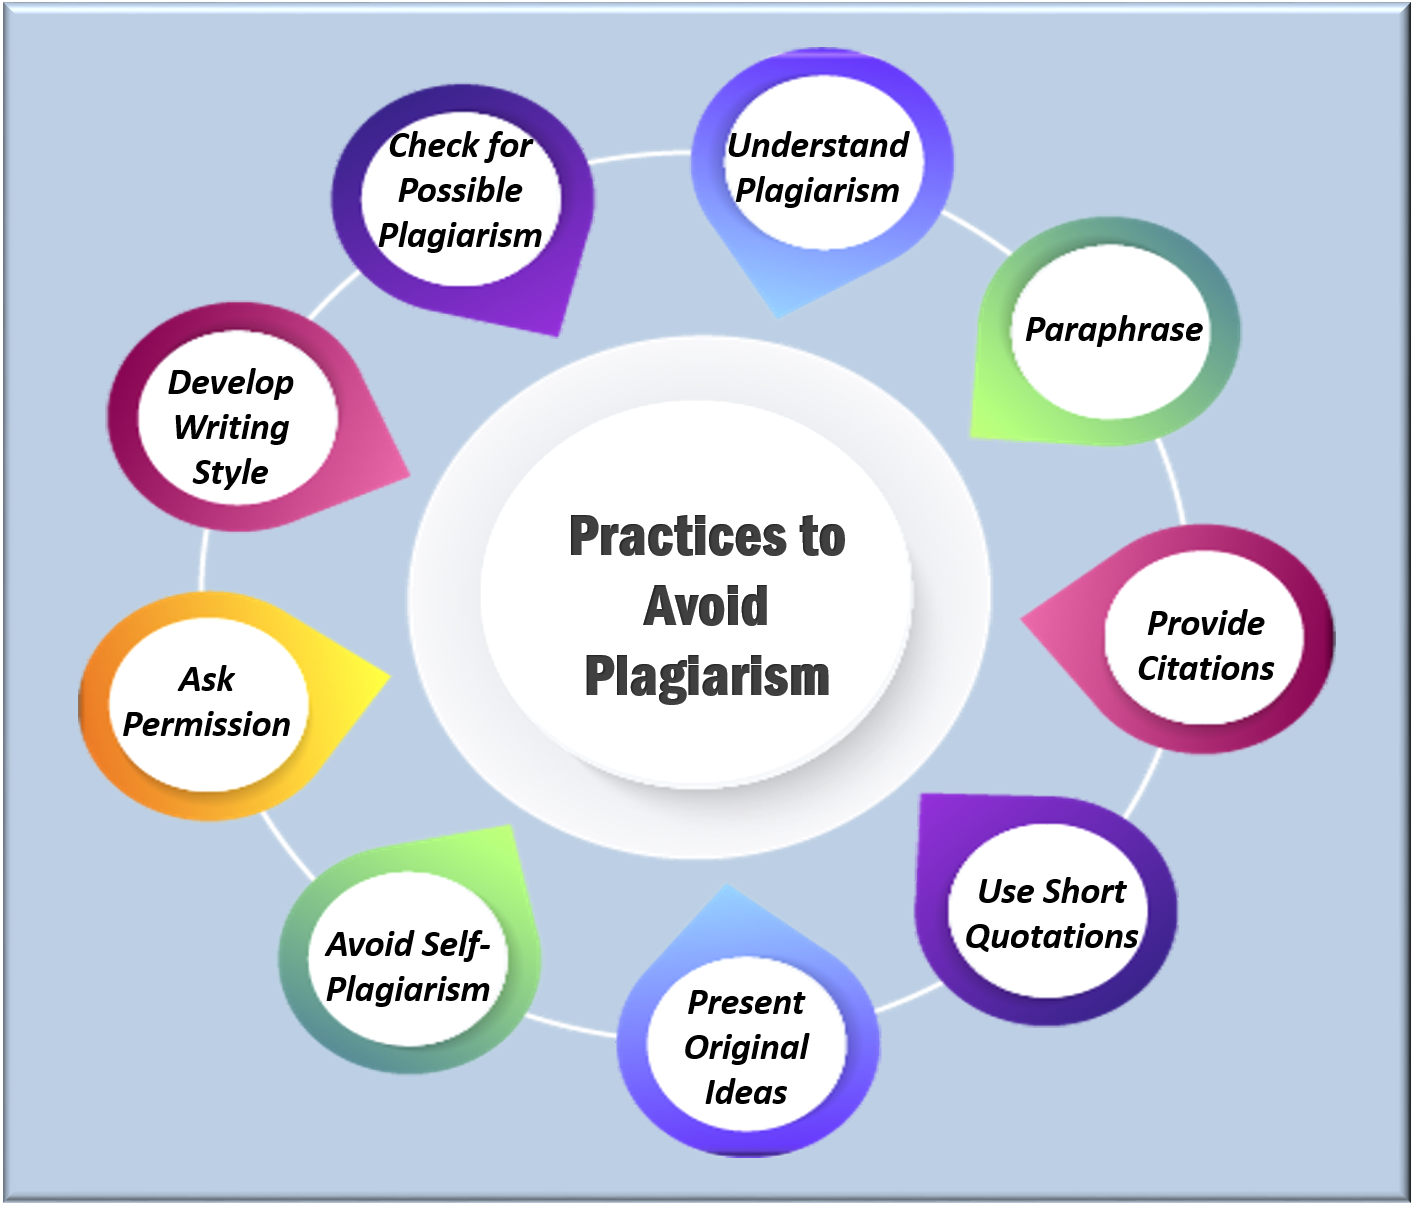 Practices to Avoid Plagiarism